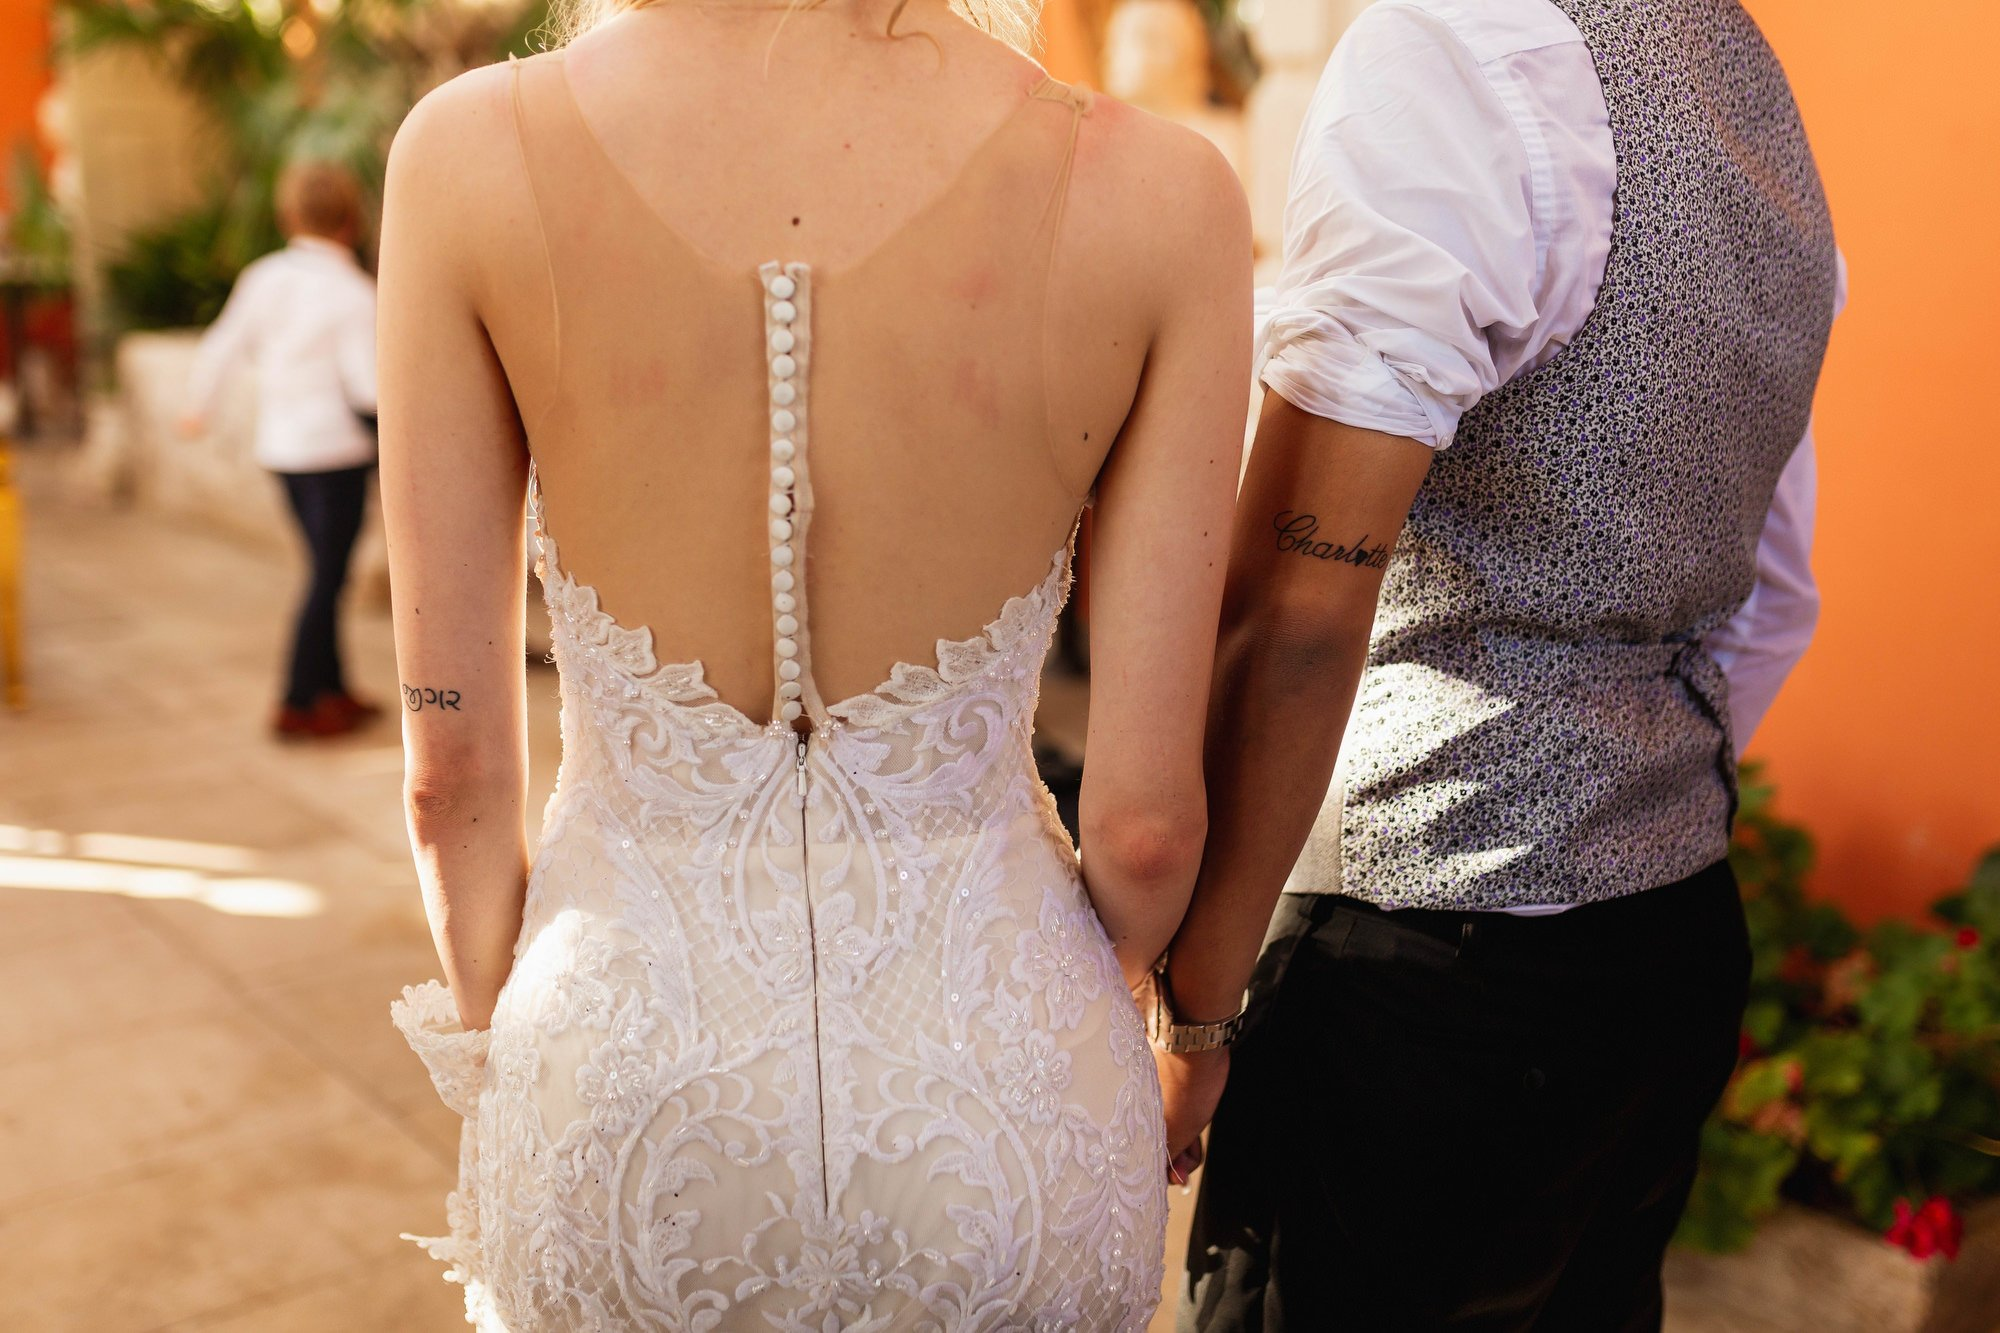 Euridge Manor, Cotswolds, bride and groom, matching tattoos, Cotswolds wedding photographer